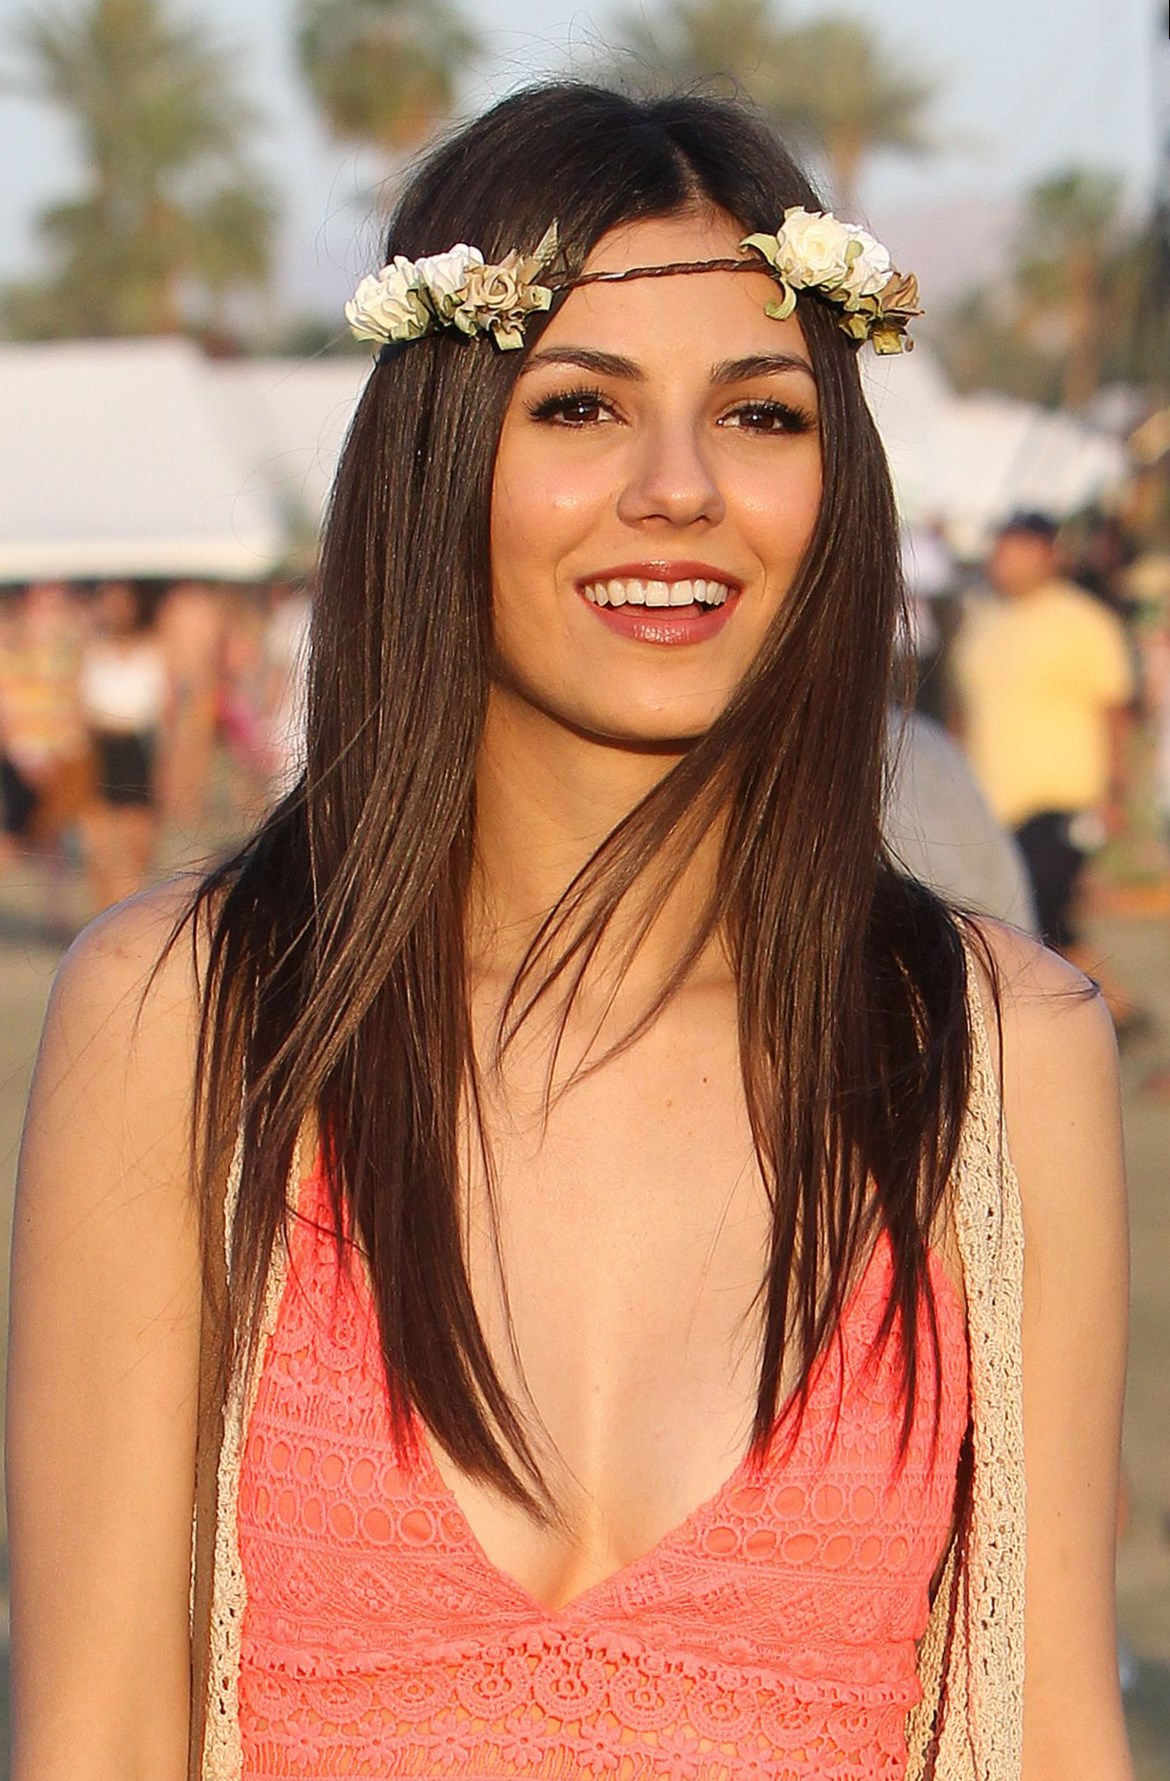 Victoria Justice nudes (38 pictures) Topless, 2016, underwear